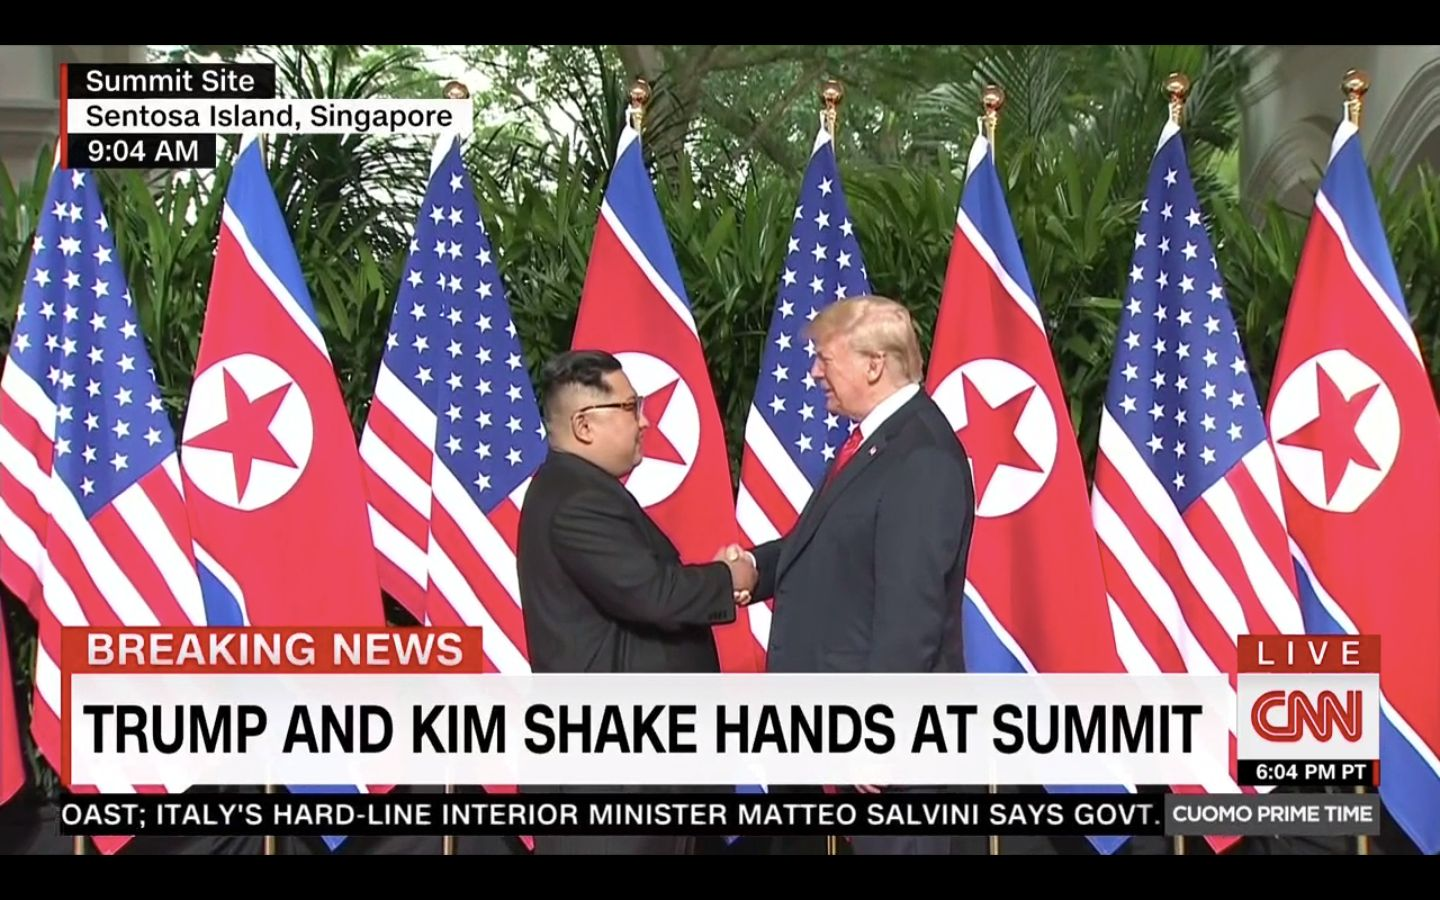 One-on-one meeting between Trump and Kim Jong Un causes problems